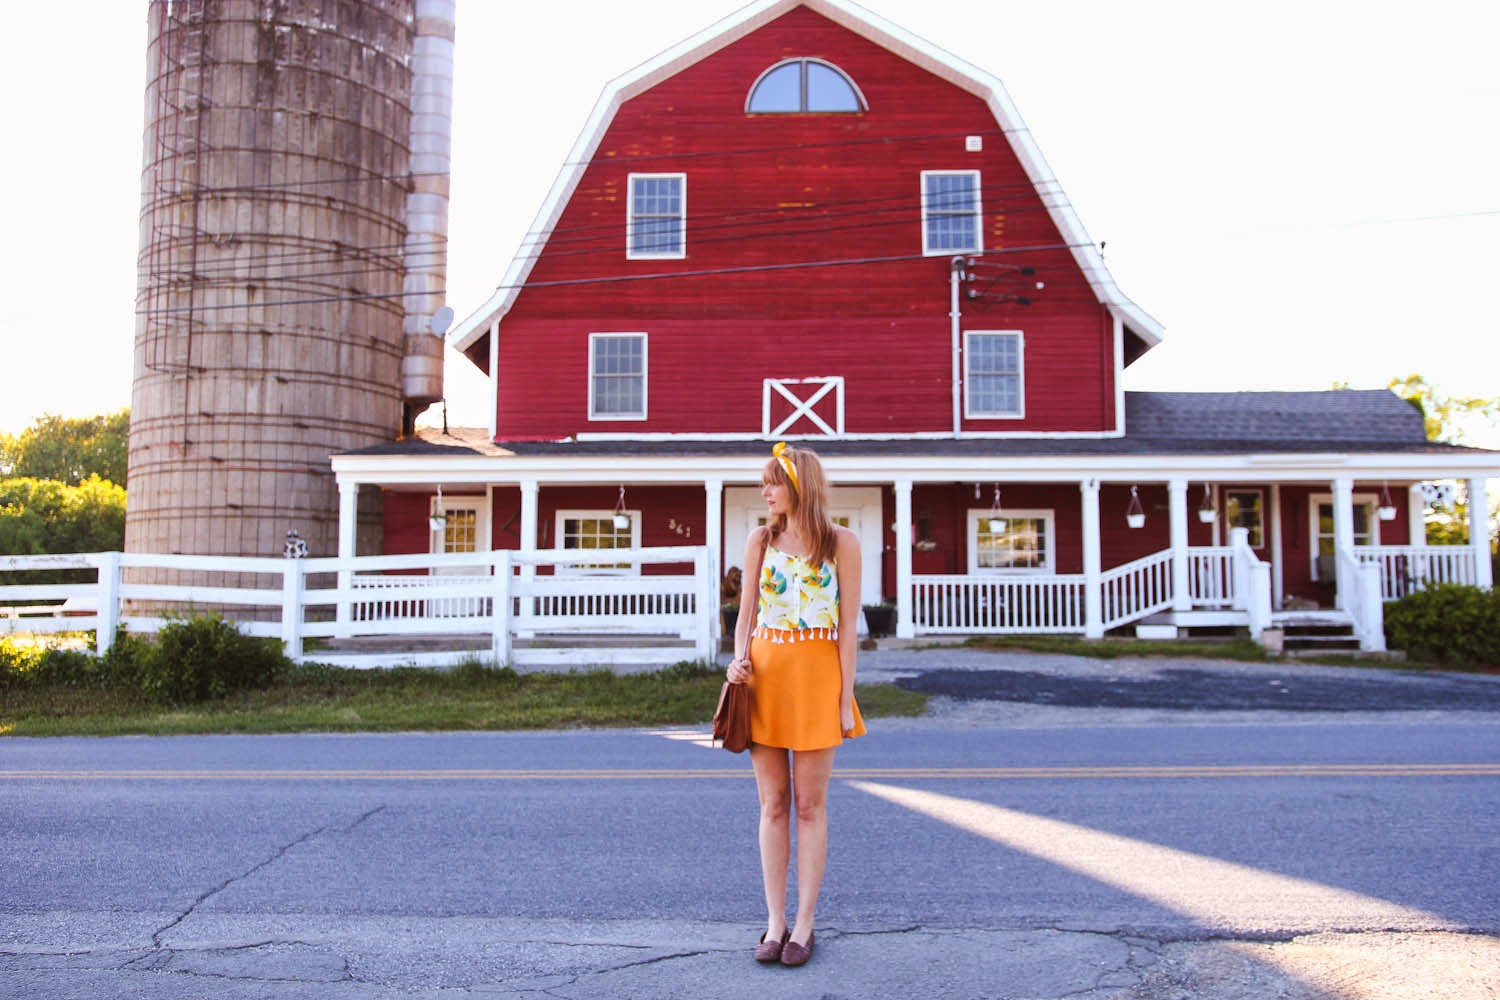 nyc vintage blog, nyc fashion blogger, nyc fashion blog, memorial day weekend outfit, upstate ny barn, missguided lemon crop top